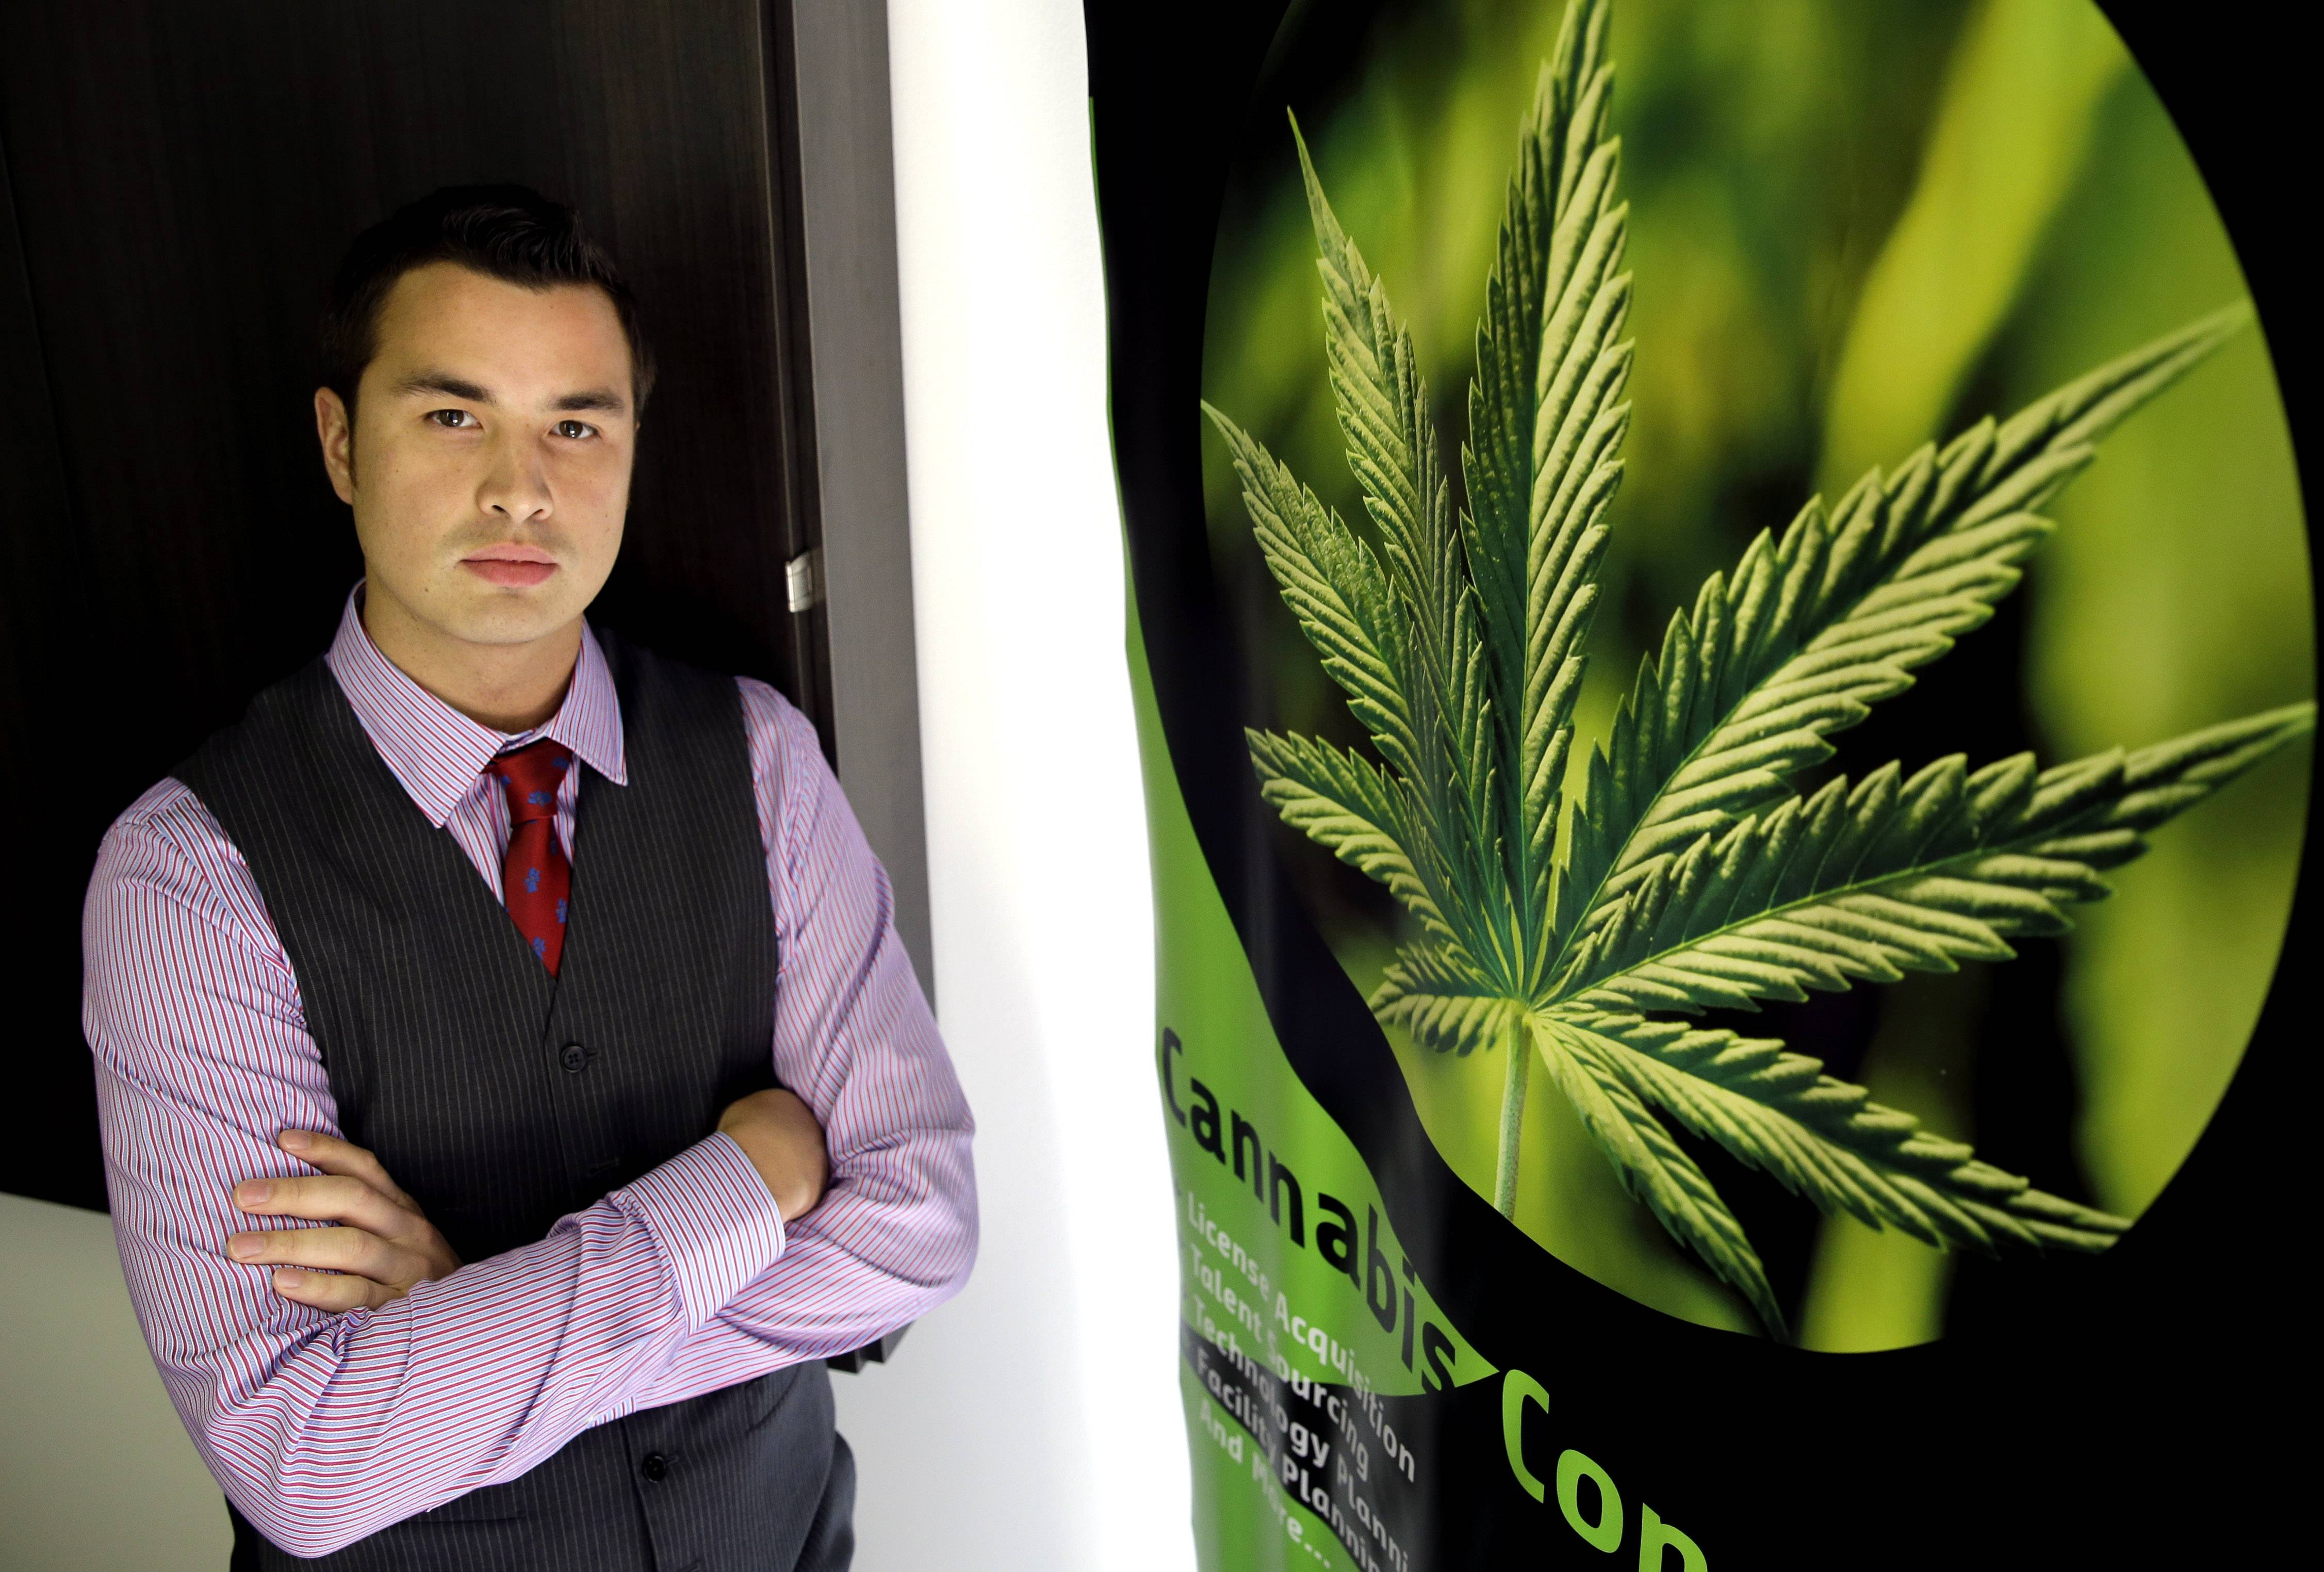 Michael Mayes, CEO of Chicago-based Quantum 9 Inc., a medical cannabis consulting company, poses for a photo in his Chicago office. The prospect of adding jobs, even as few as 30, has led officials in many shrinking Illinois' communities to set aside any qualms about the state's legalization of medical marijuana and to get friendly with would-be growers.